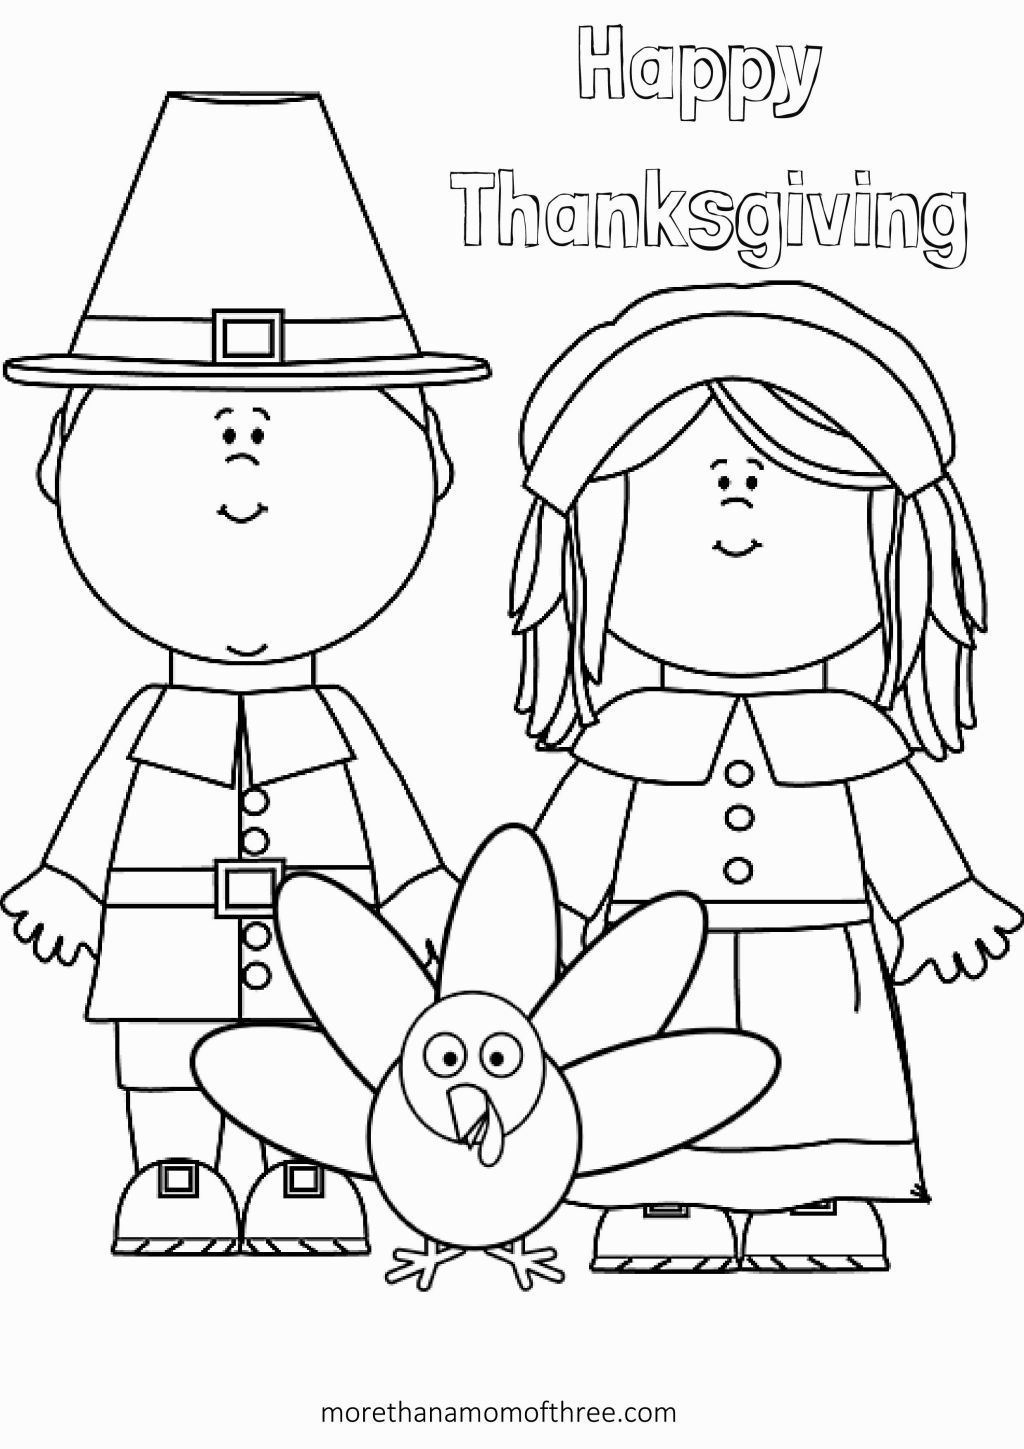 coloring kindergarten pages turkey 2020 Check more at